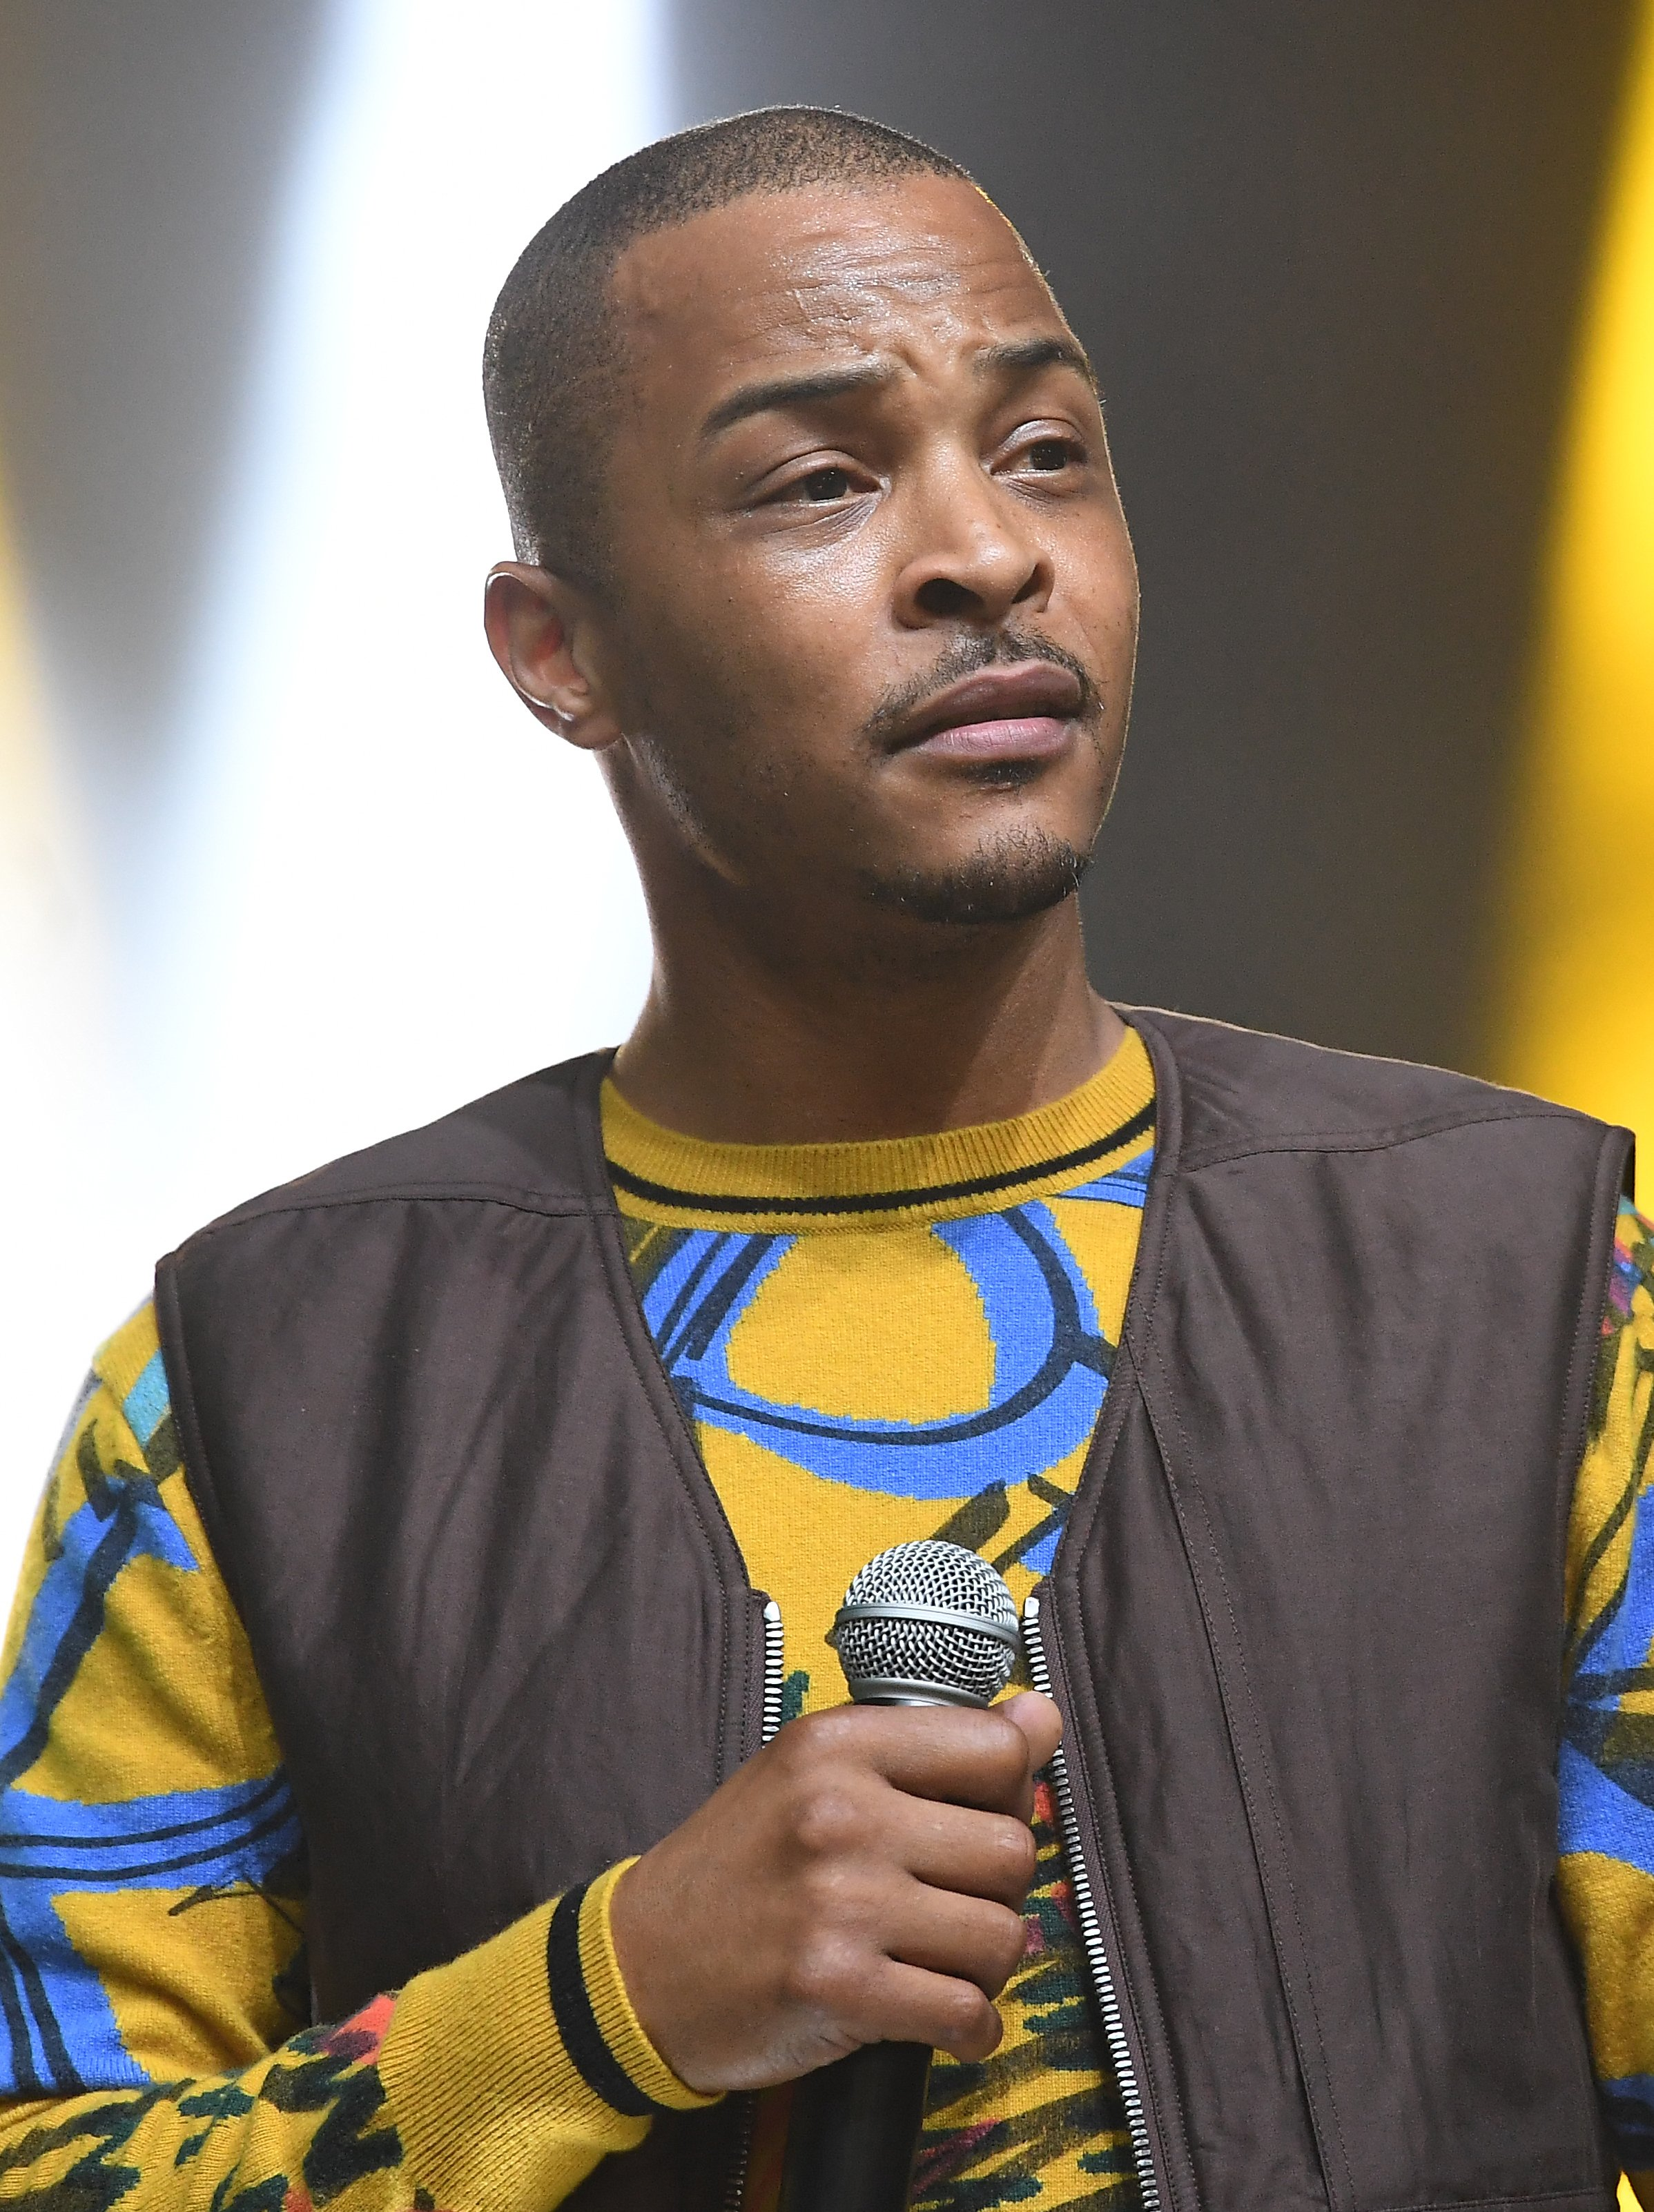 T.I. during a performance in Atlanta in July 2018. | Photo: Getty Images